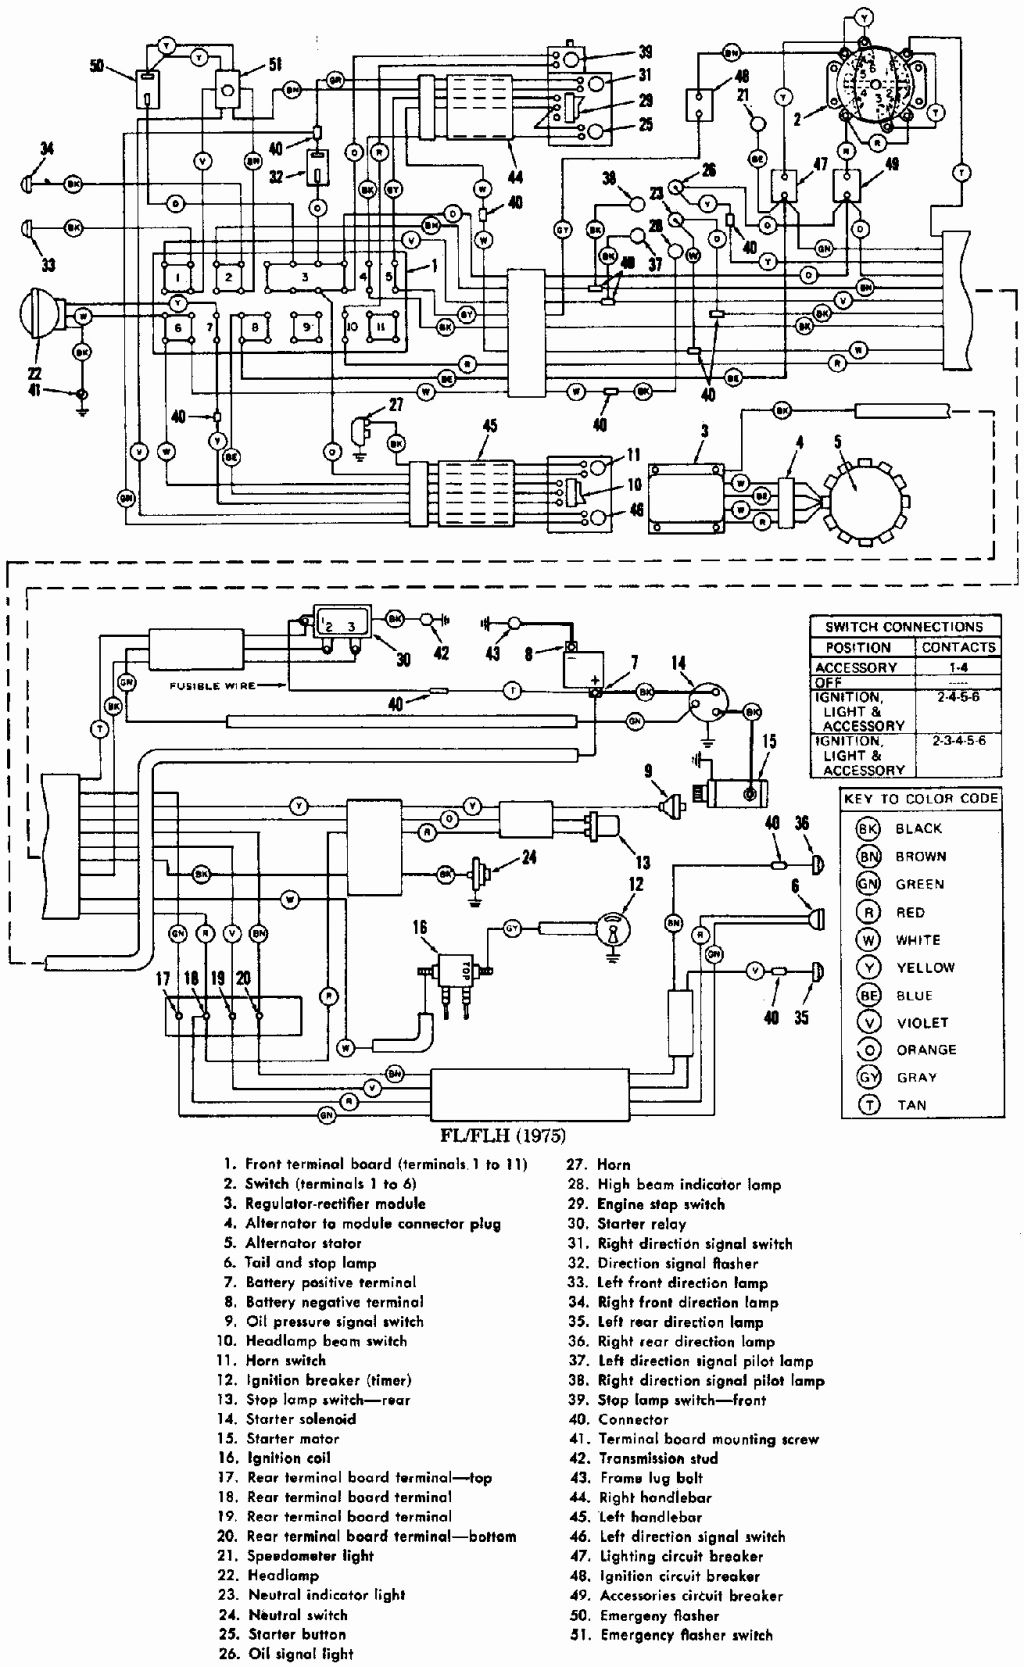 Harley Flh Wiring Harness Diagram - Wiring Diagram Content on